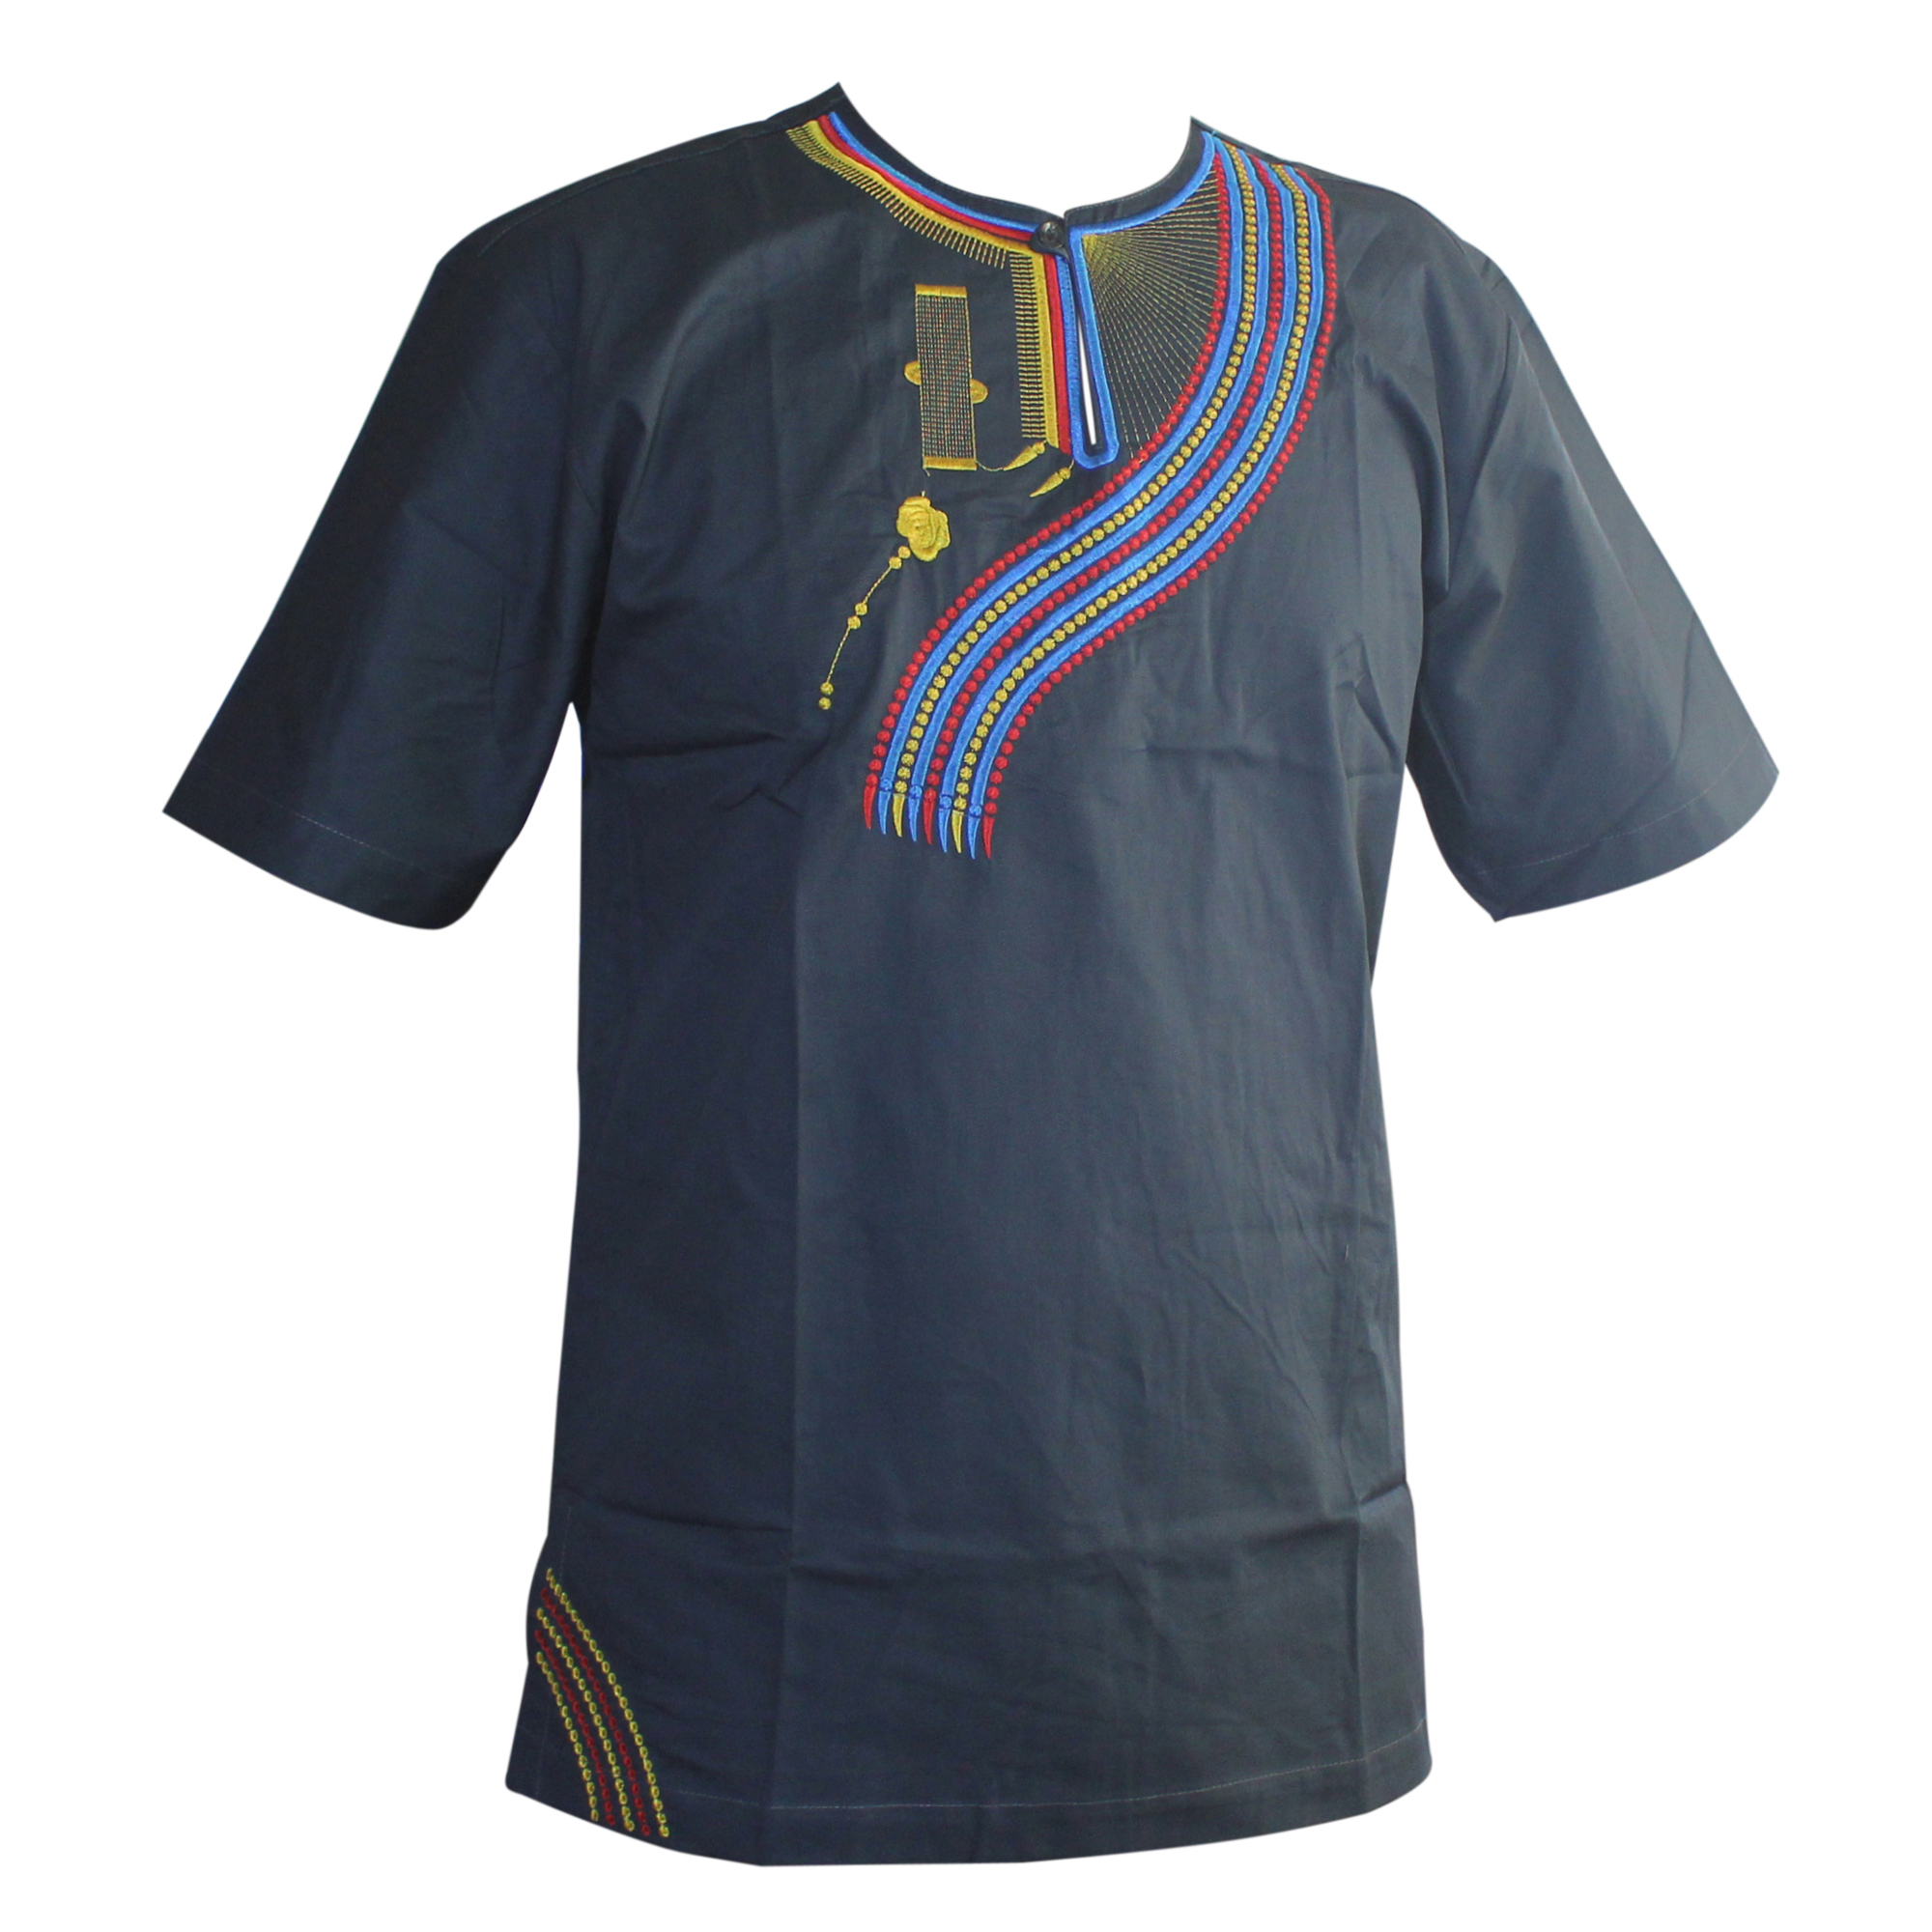 2019 Men camisas hombre Tshirt African Embroidered Ukrainian Ethnic Awesome Colors Traditional Mali Vintage Dashiki Top in T Shirts from Men 39 s Clothing